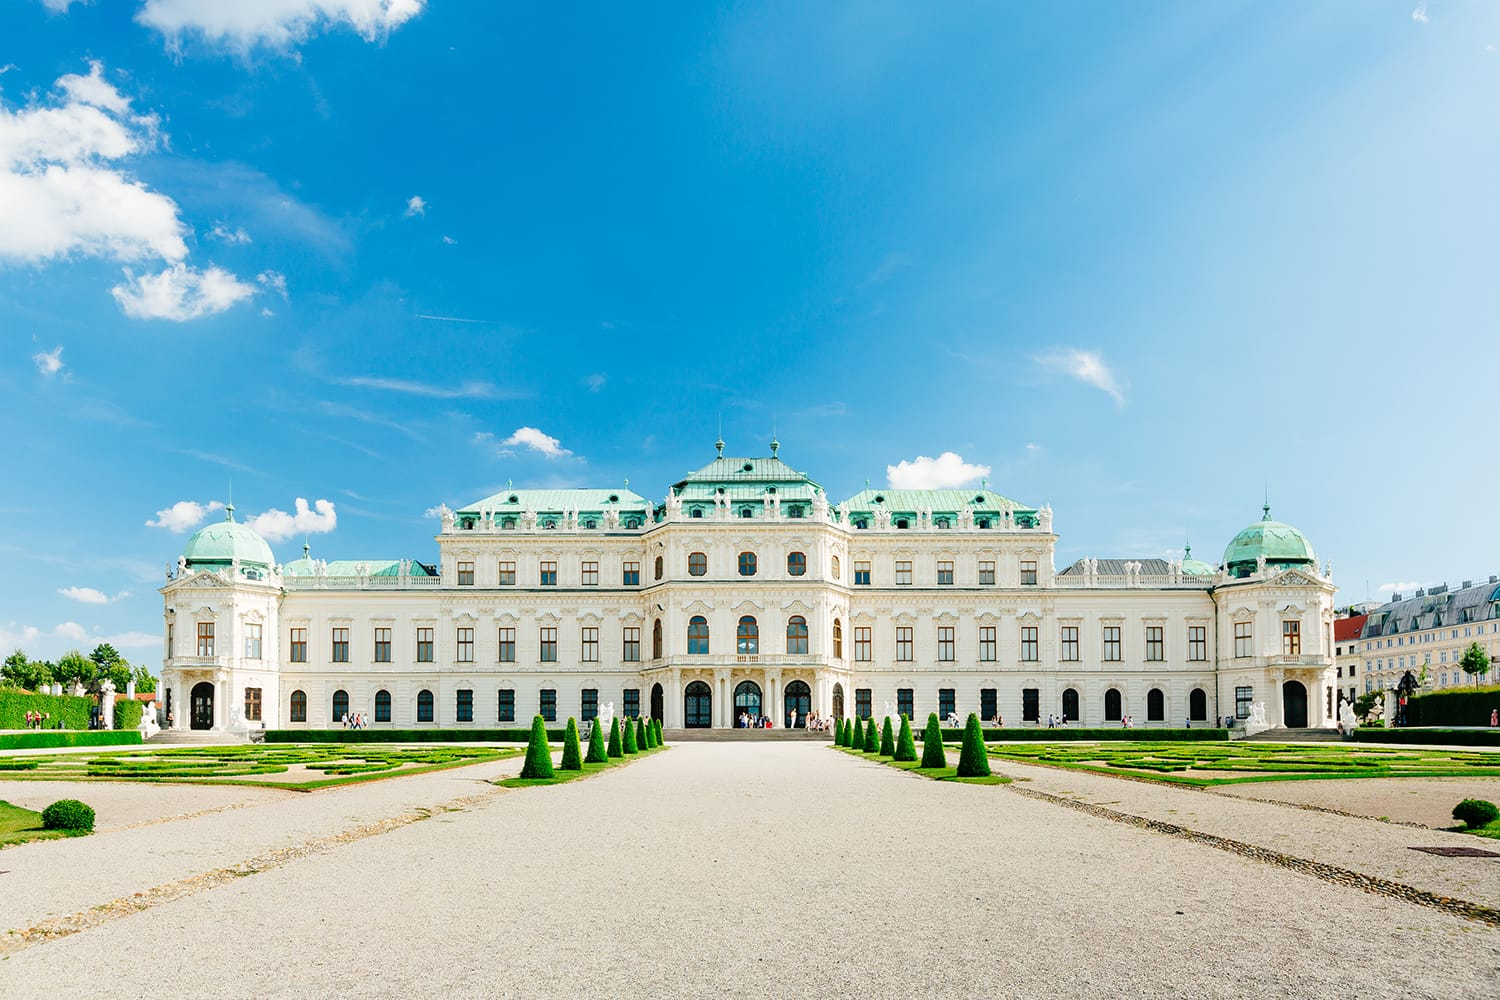 Belvedere Palace in Vienna (c) VIENNA SIGHTSEEING TOURS/Bernhard Luck